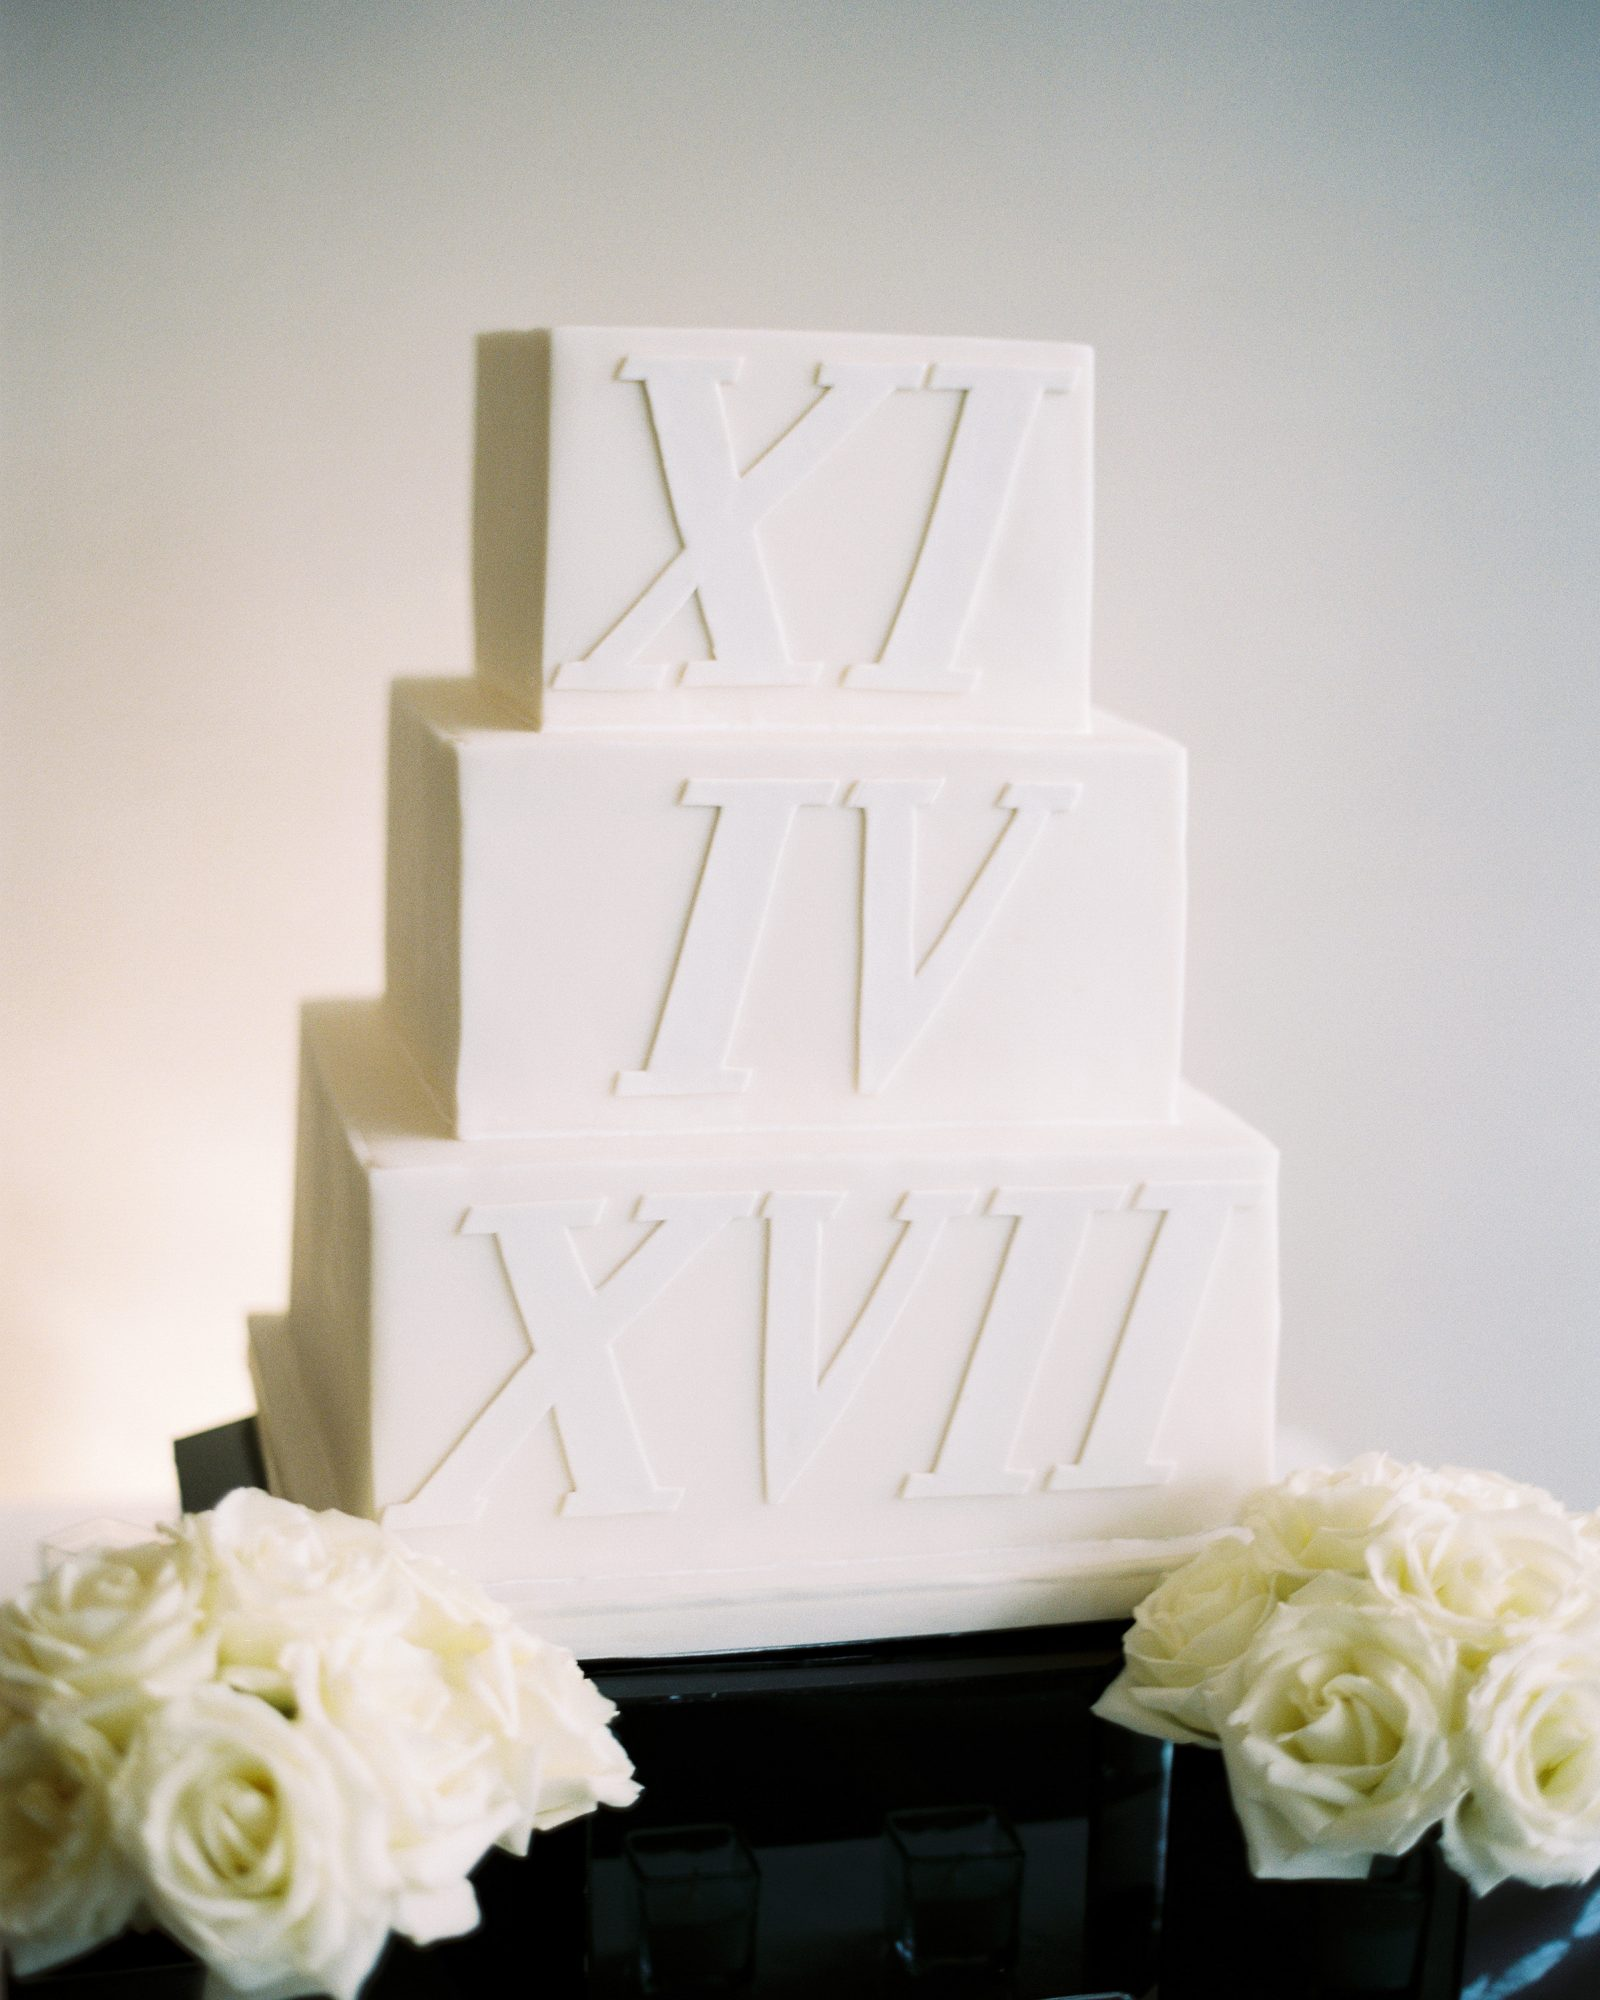 cubed wedding cake with roman numerals